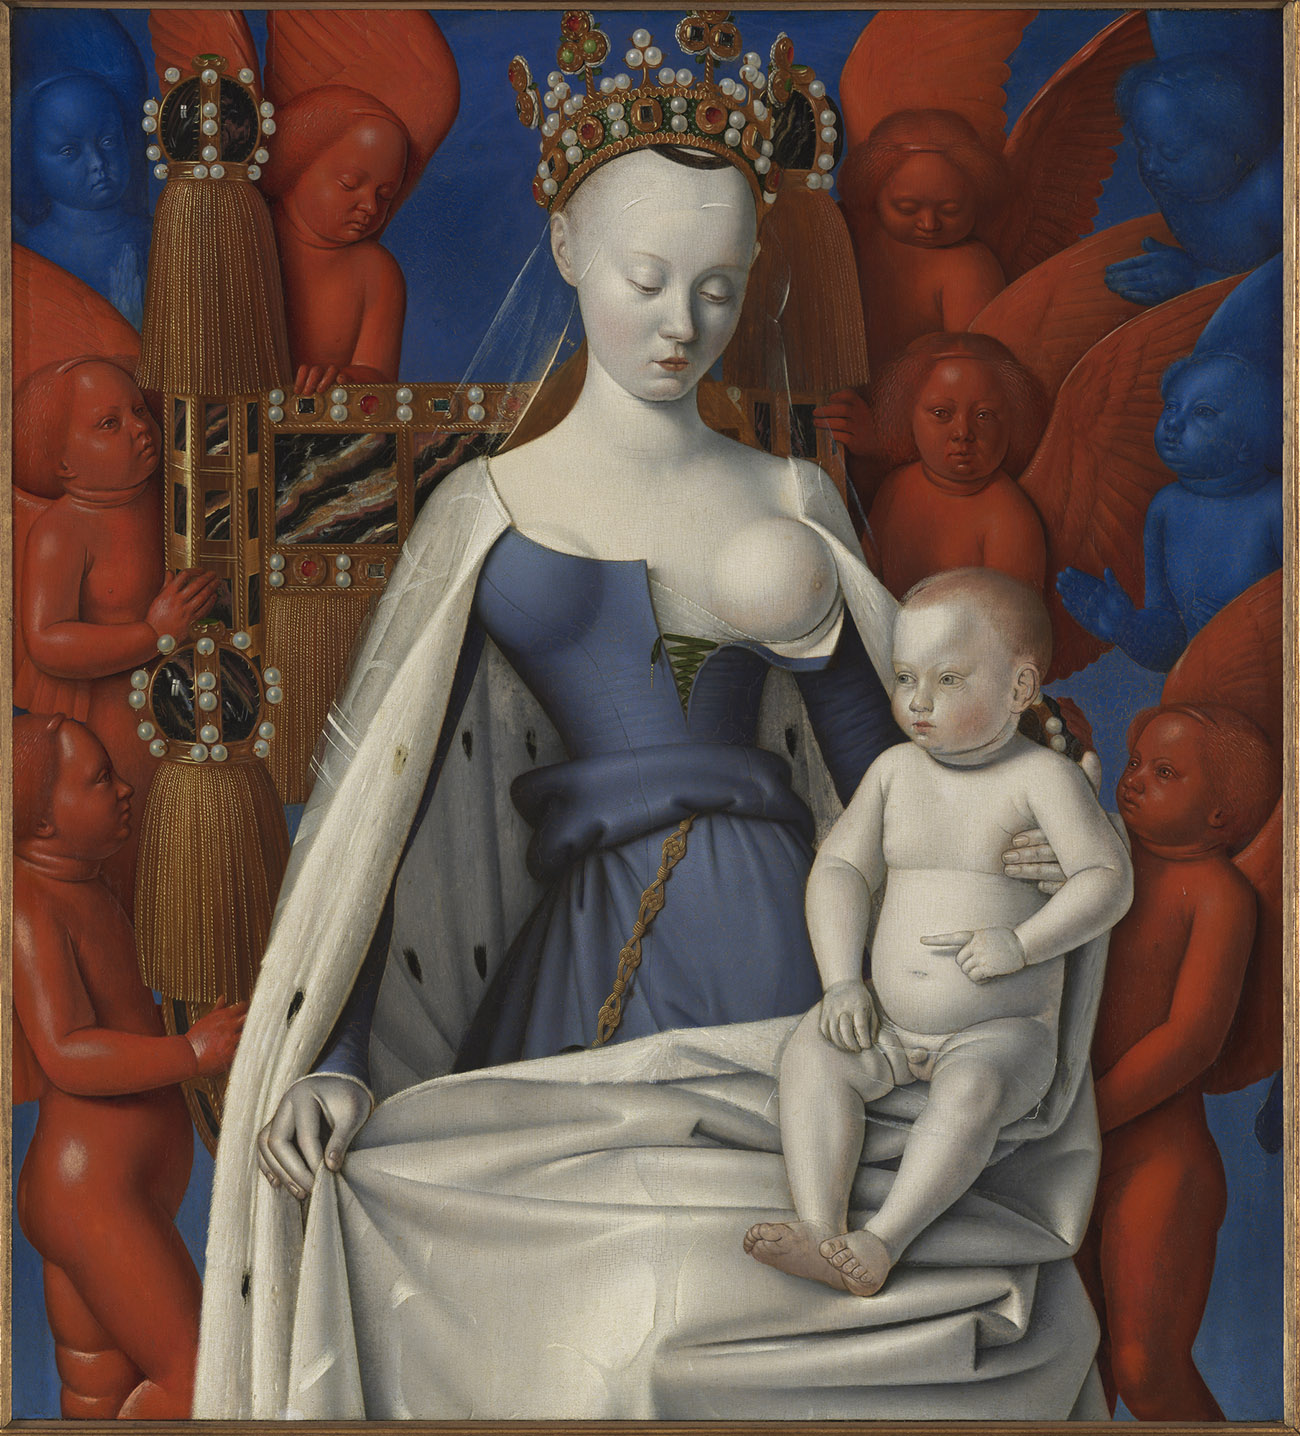 A pale-skinned Virgin Mary with one breast exposed, holding an infant Jesus.